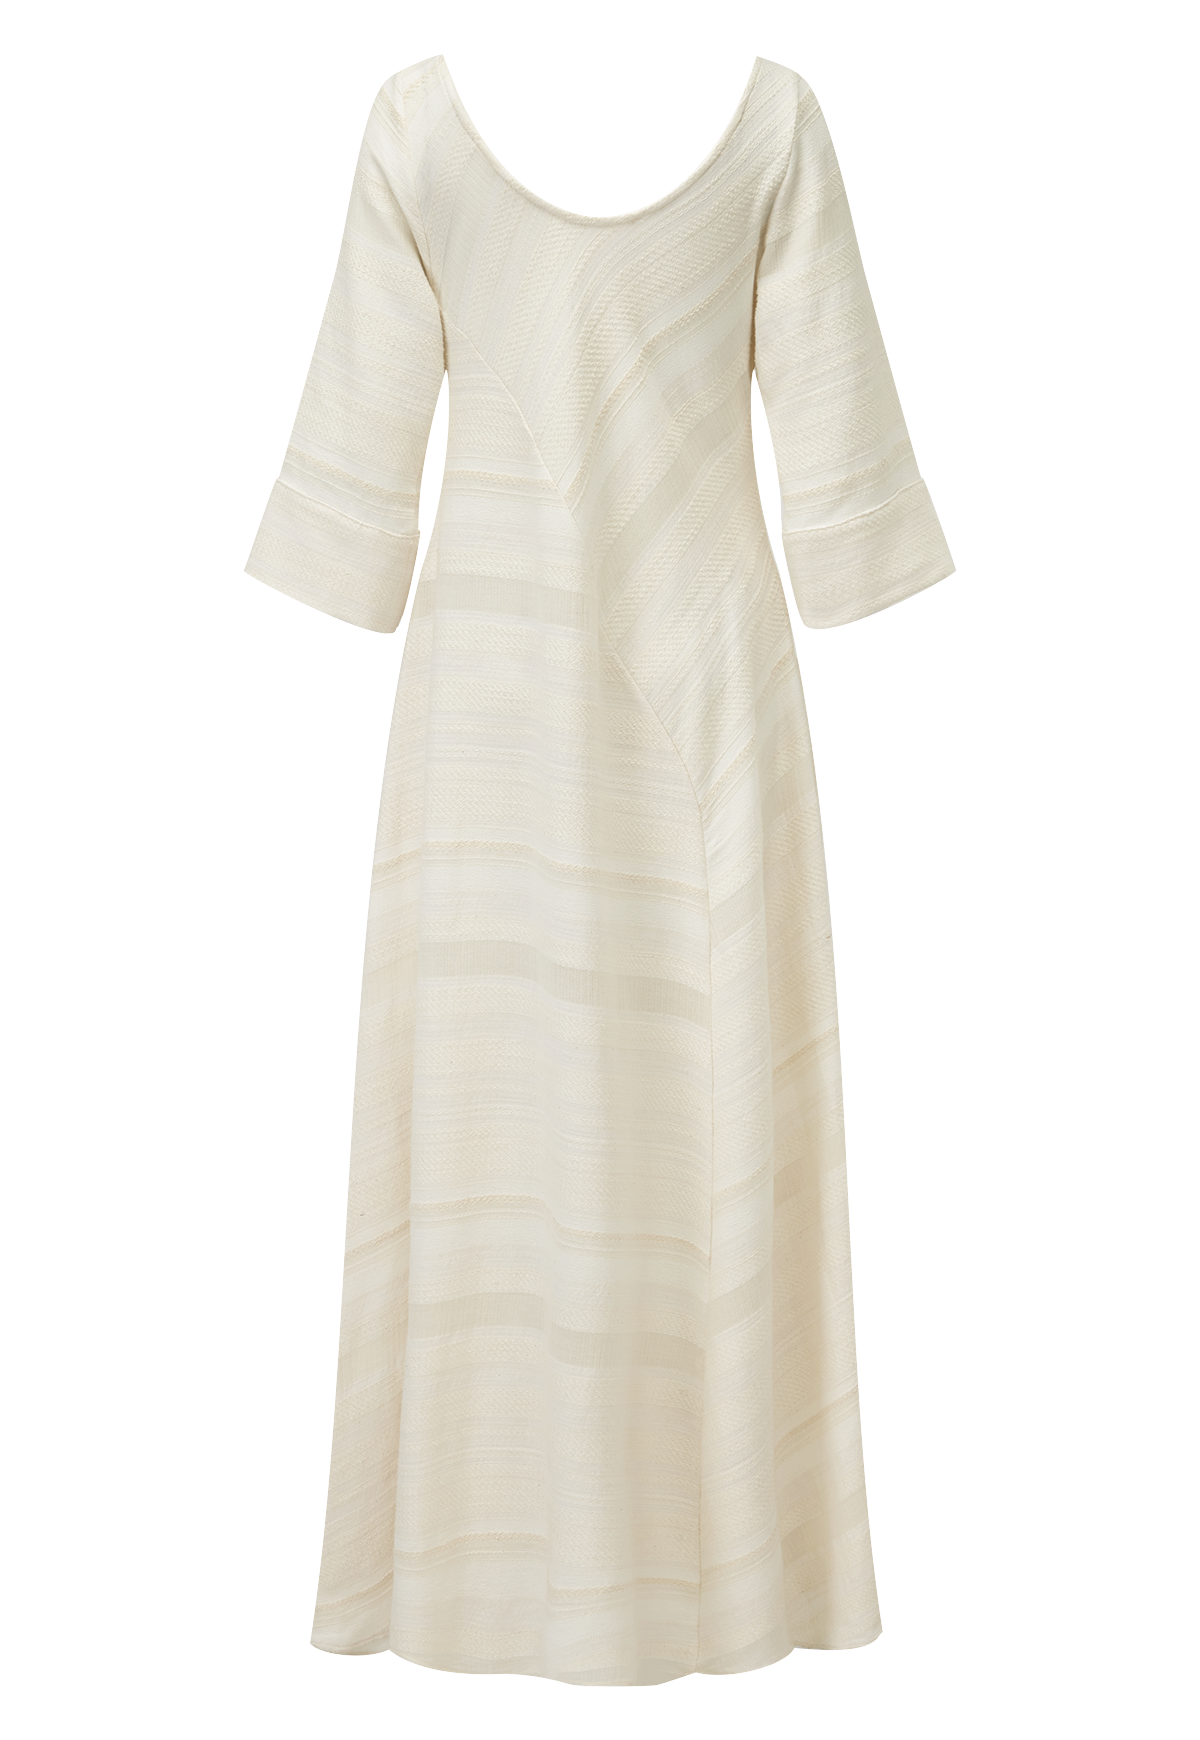 PATMOS CREAM COTTON DRESS